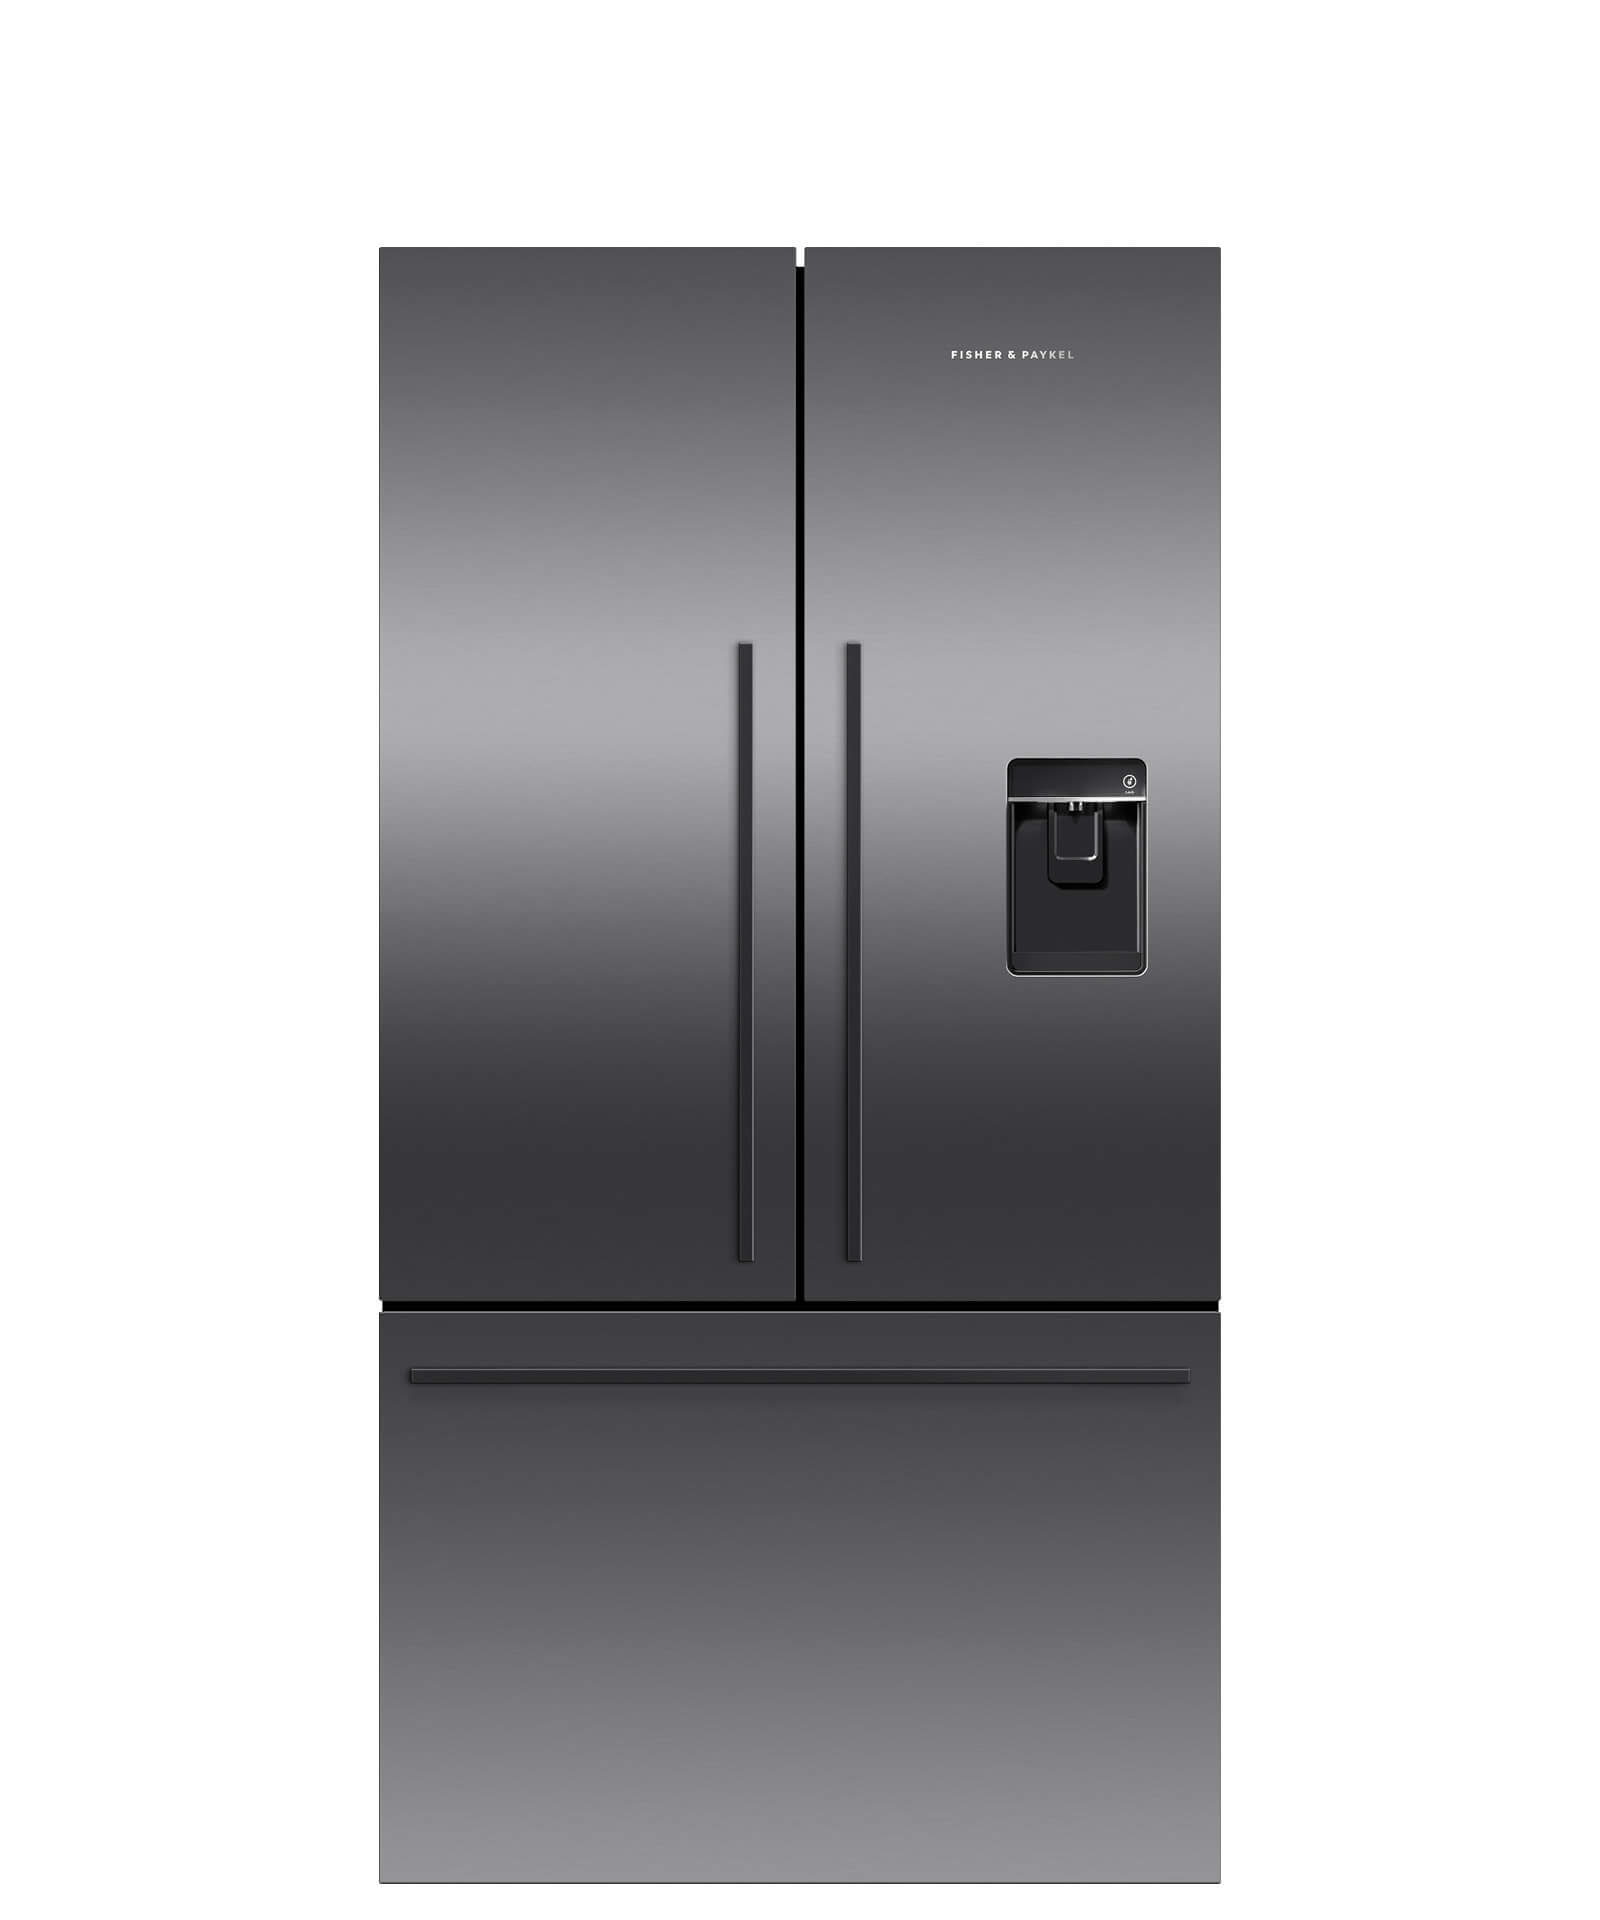 Fisher and Paykel Black Stainless Steel French Door Refrigerator, 20.1 cu ft, Ice & Water